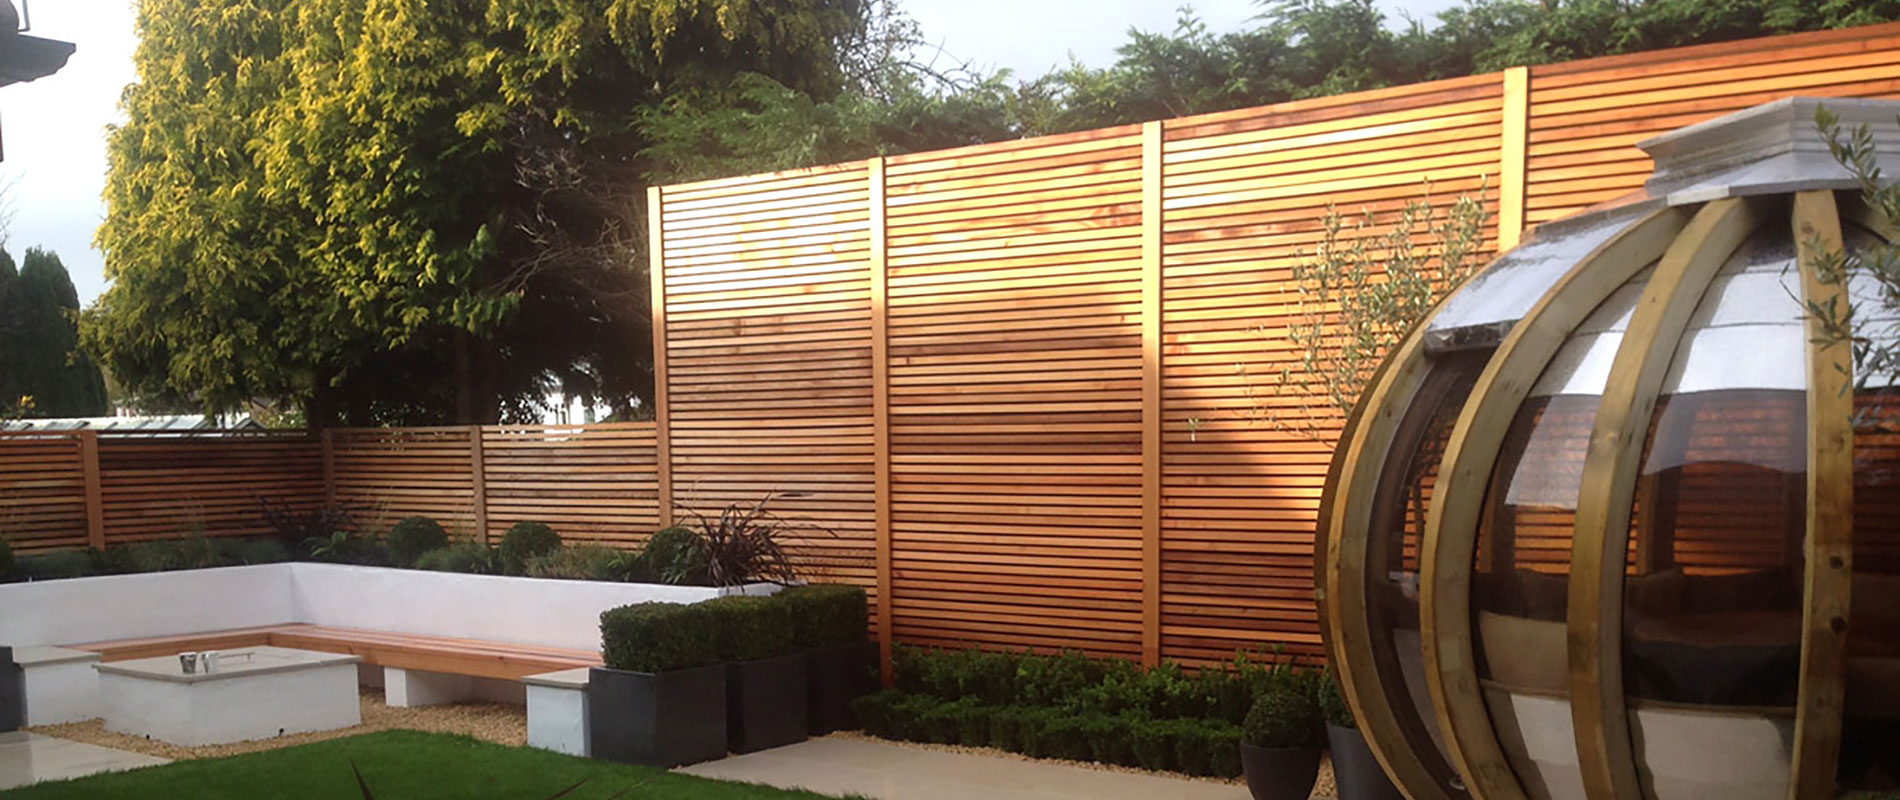 Cedar Slatted Screens in a Contemporary Garden With a High Level of Sophistication